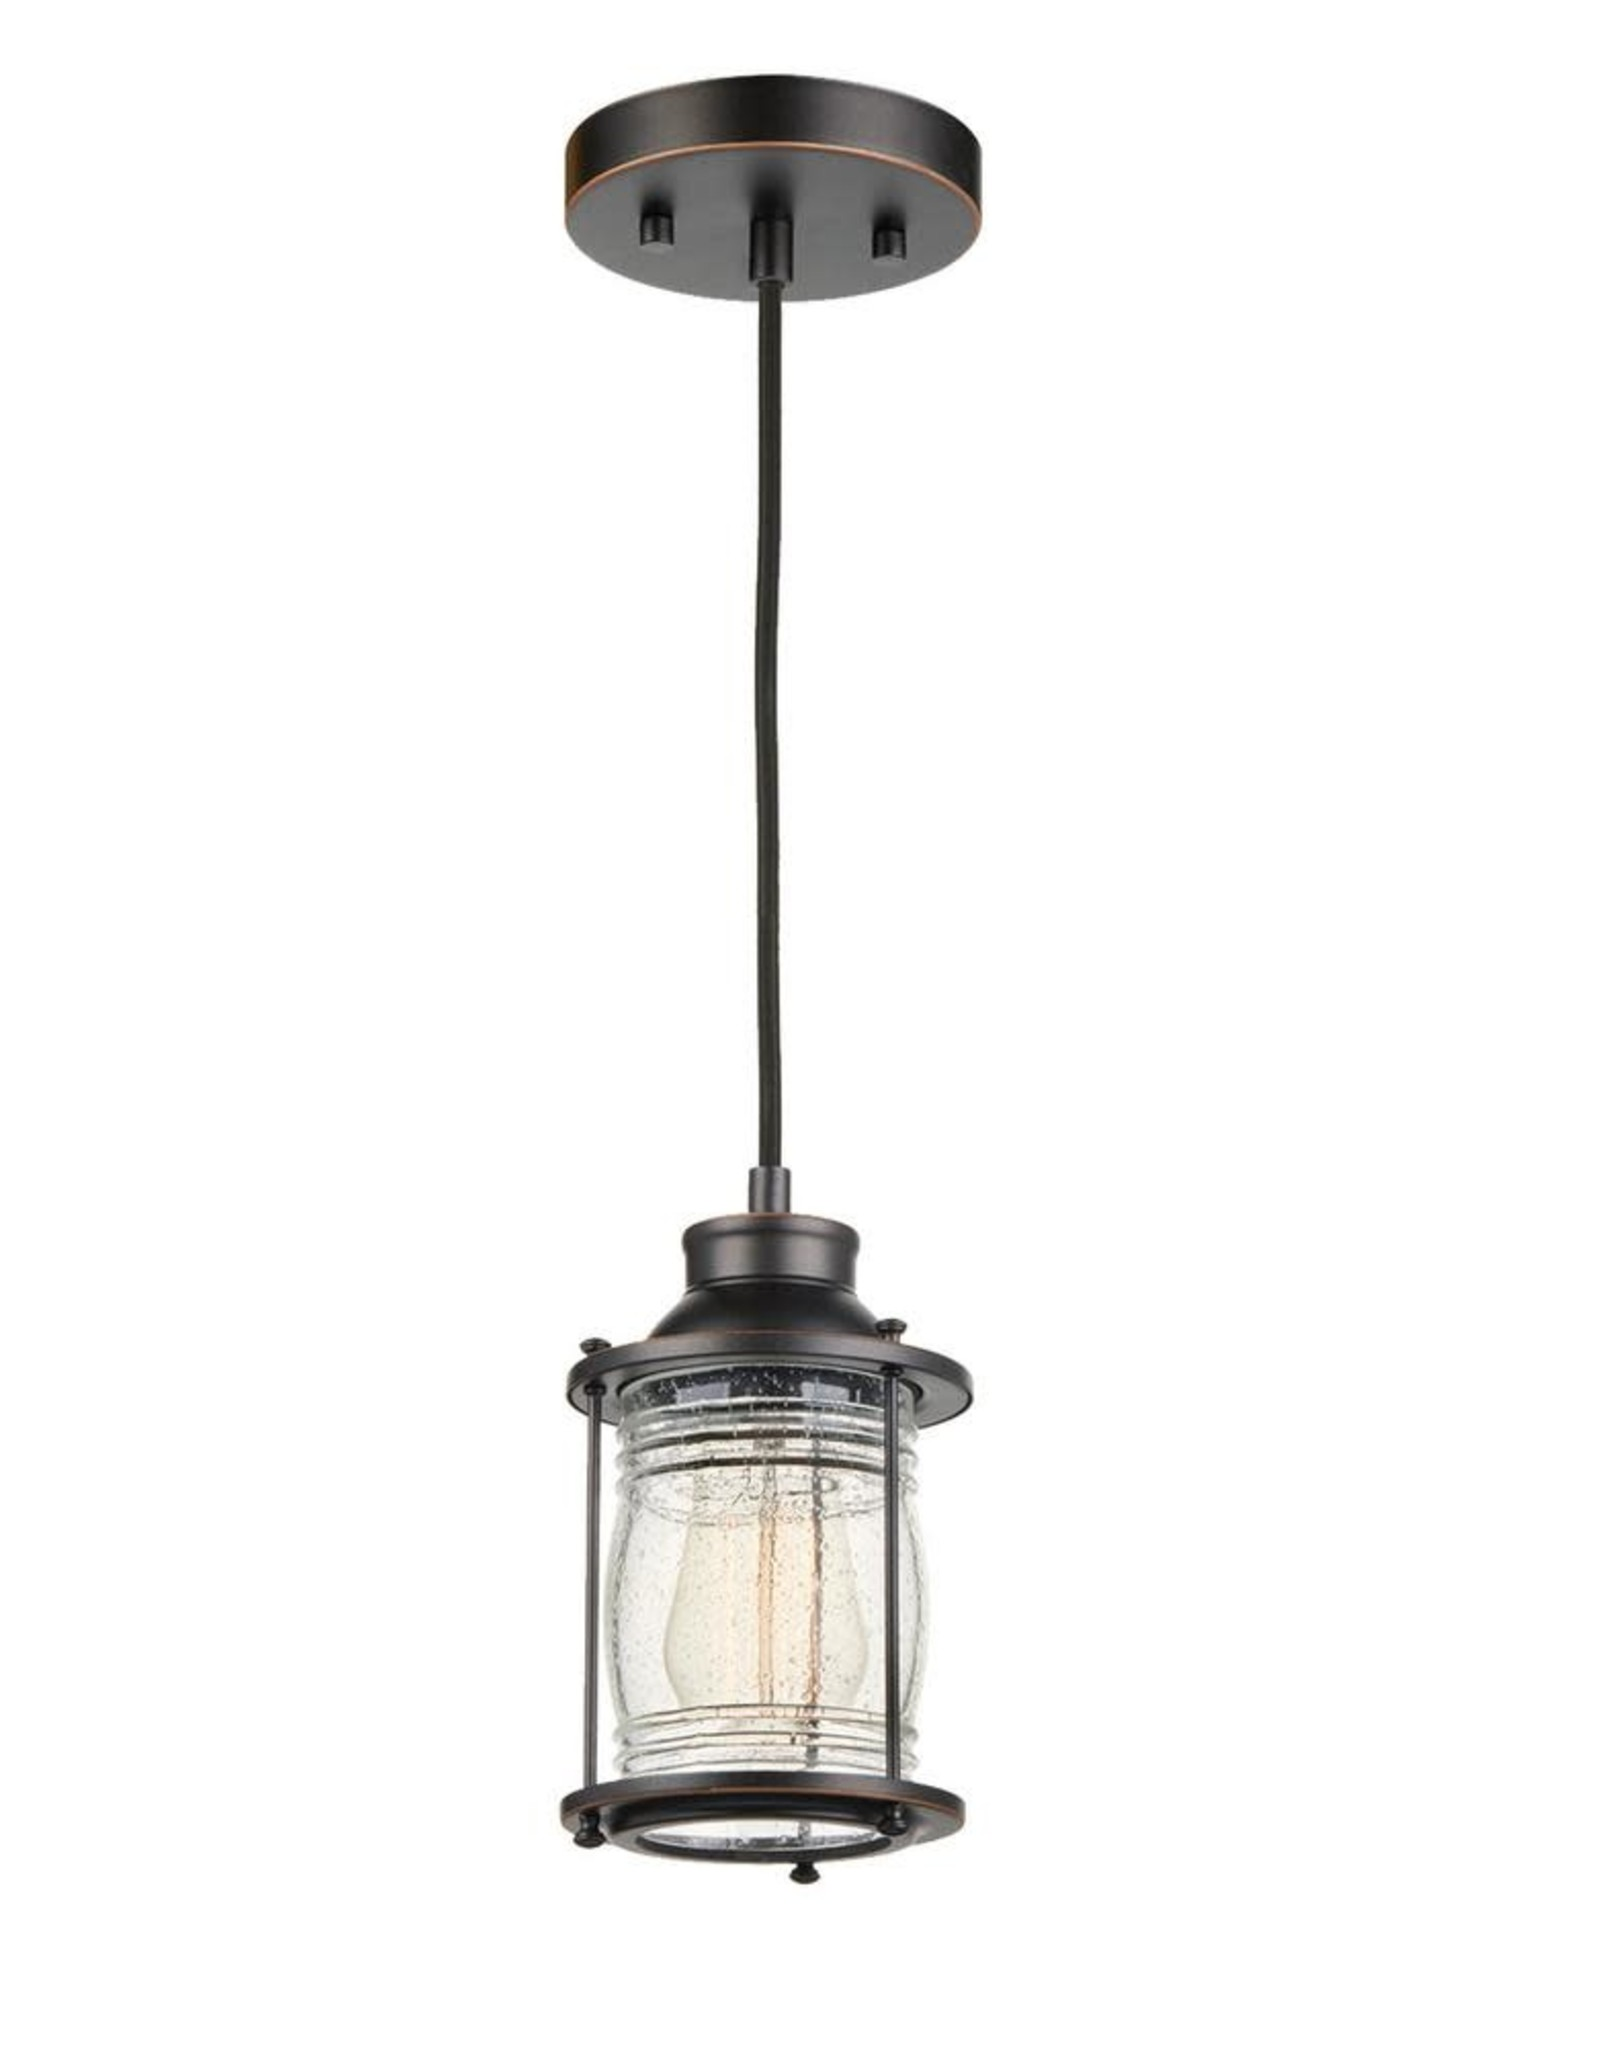 Globe Electric Bayfield 1-Light Dark Bronze Plug-In or Hardwire Pendant Lighting with Ribbed Seeded Glass Shade